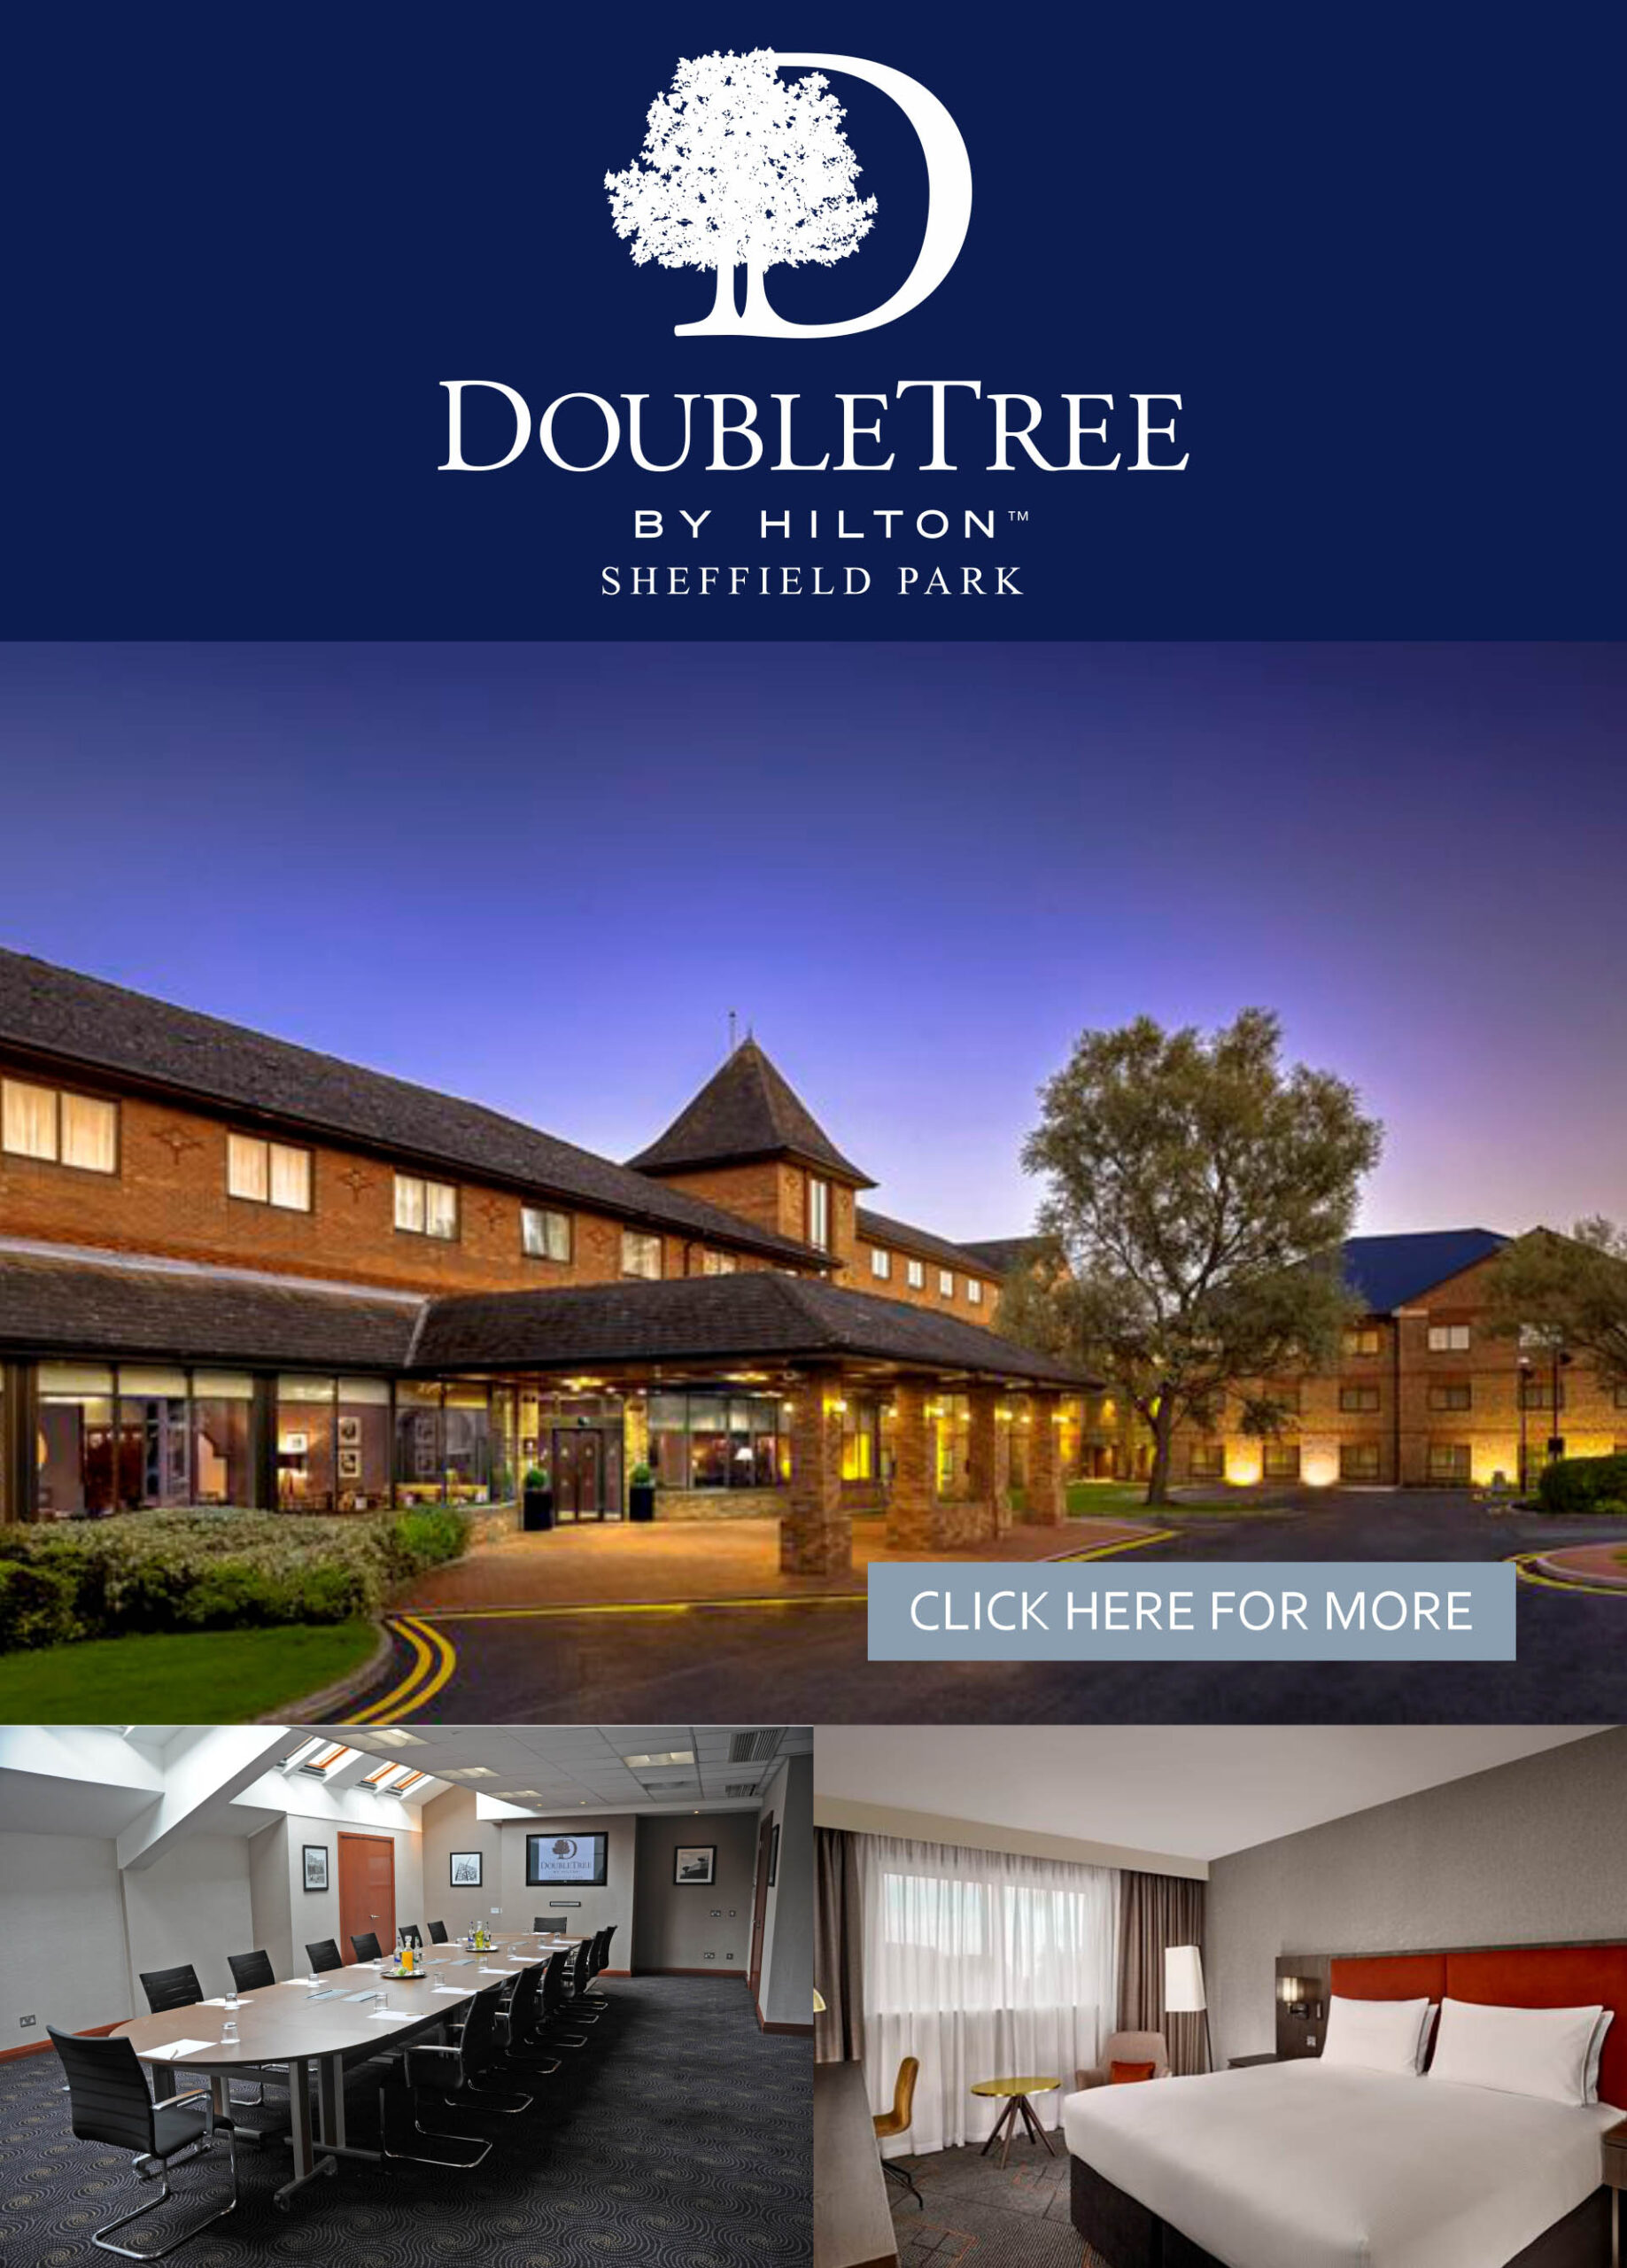 DoubleTree by Hilton Sheffield Park Hotel meeting image